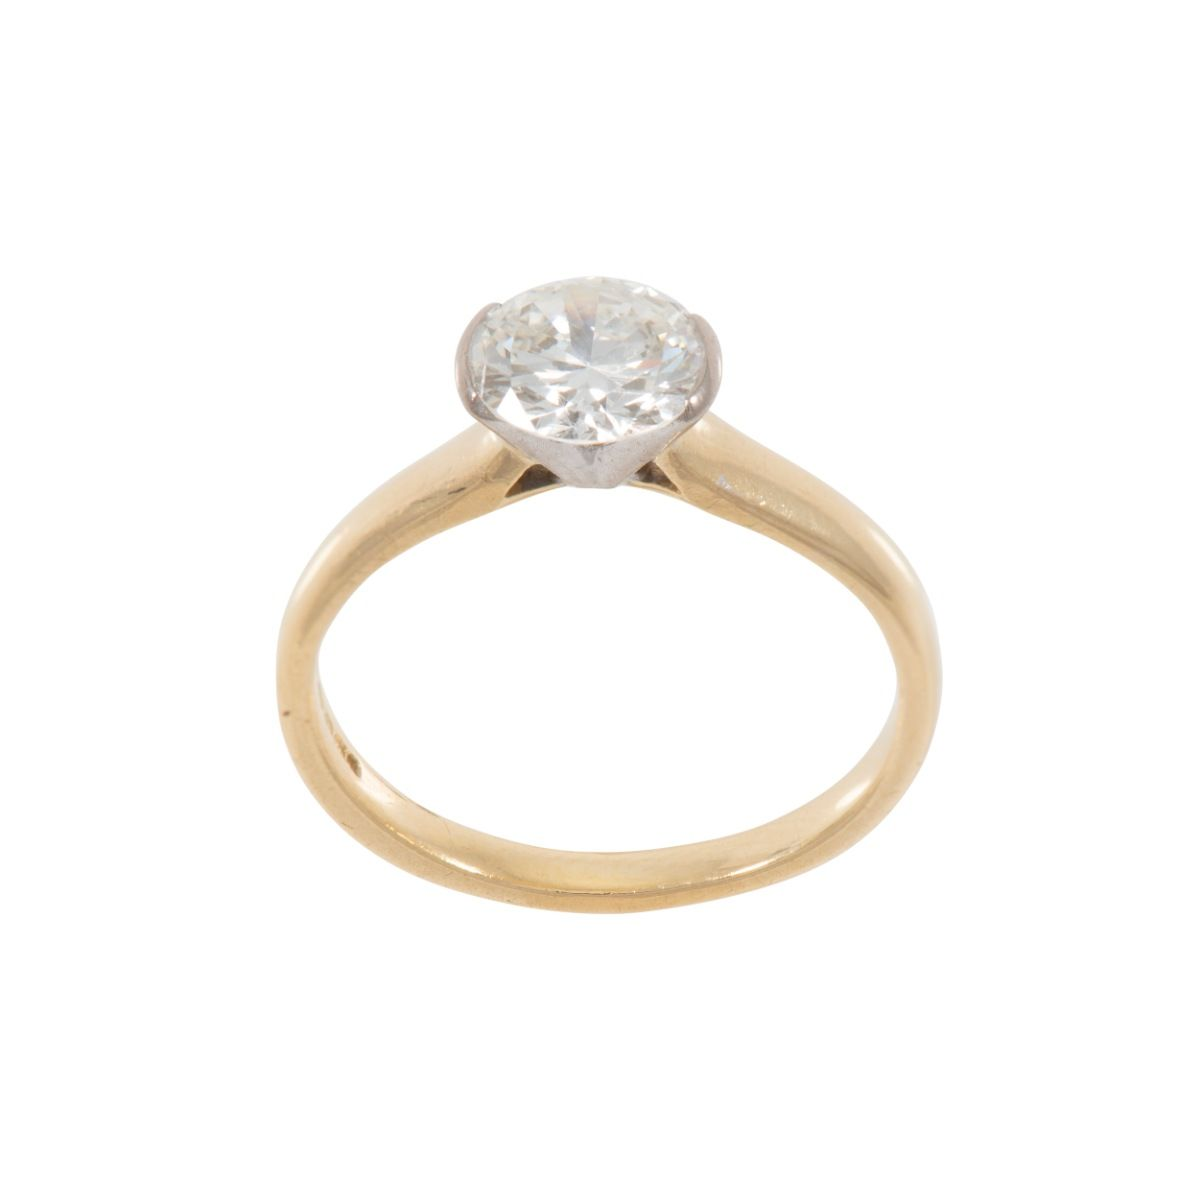 18ct Yellow Gold 1.39ct Diamond Solitaire Ring Ladies Size Q